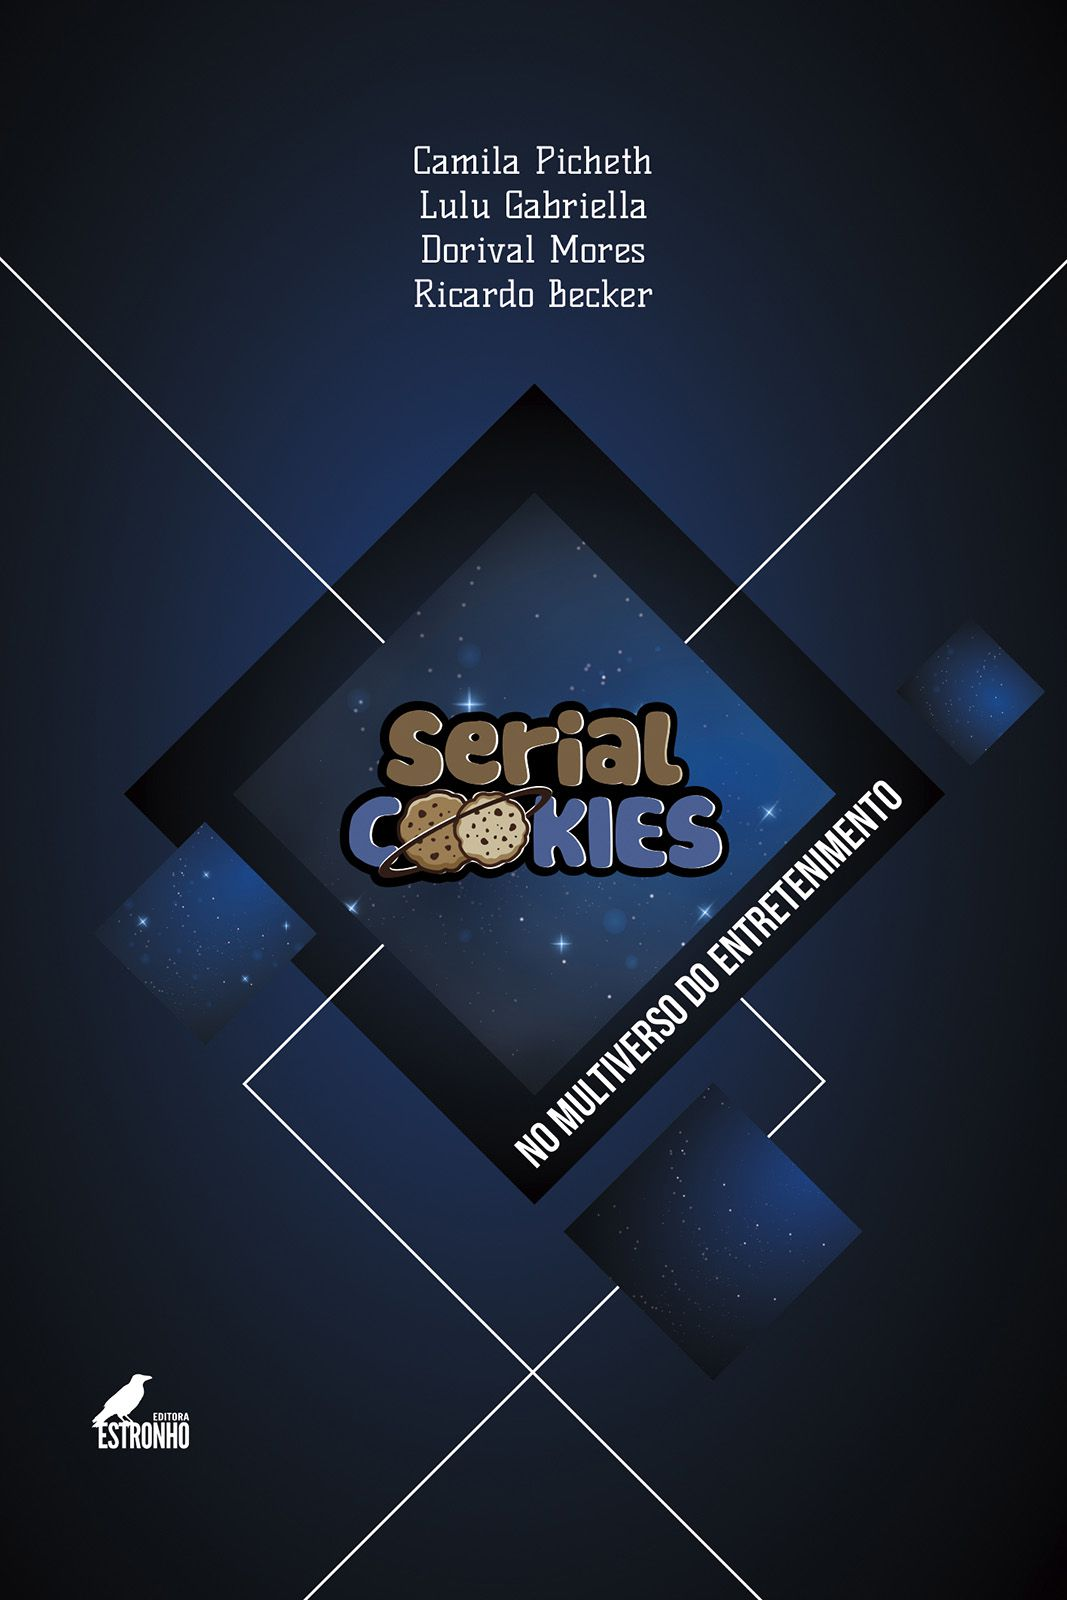 Serial Cookies no Multiverso do Entretenimento  - Loja da Editora Estronho